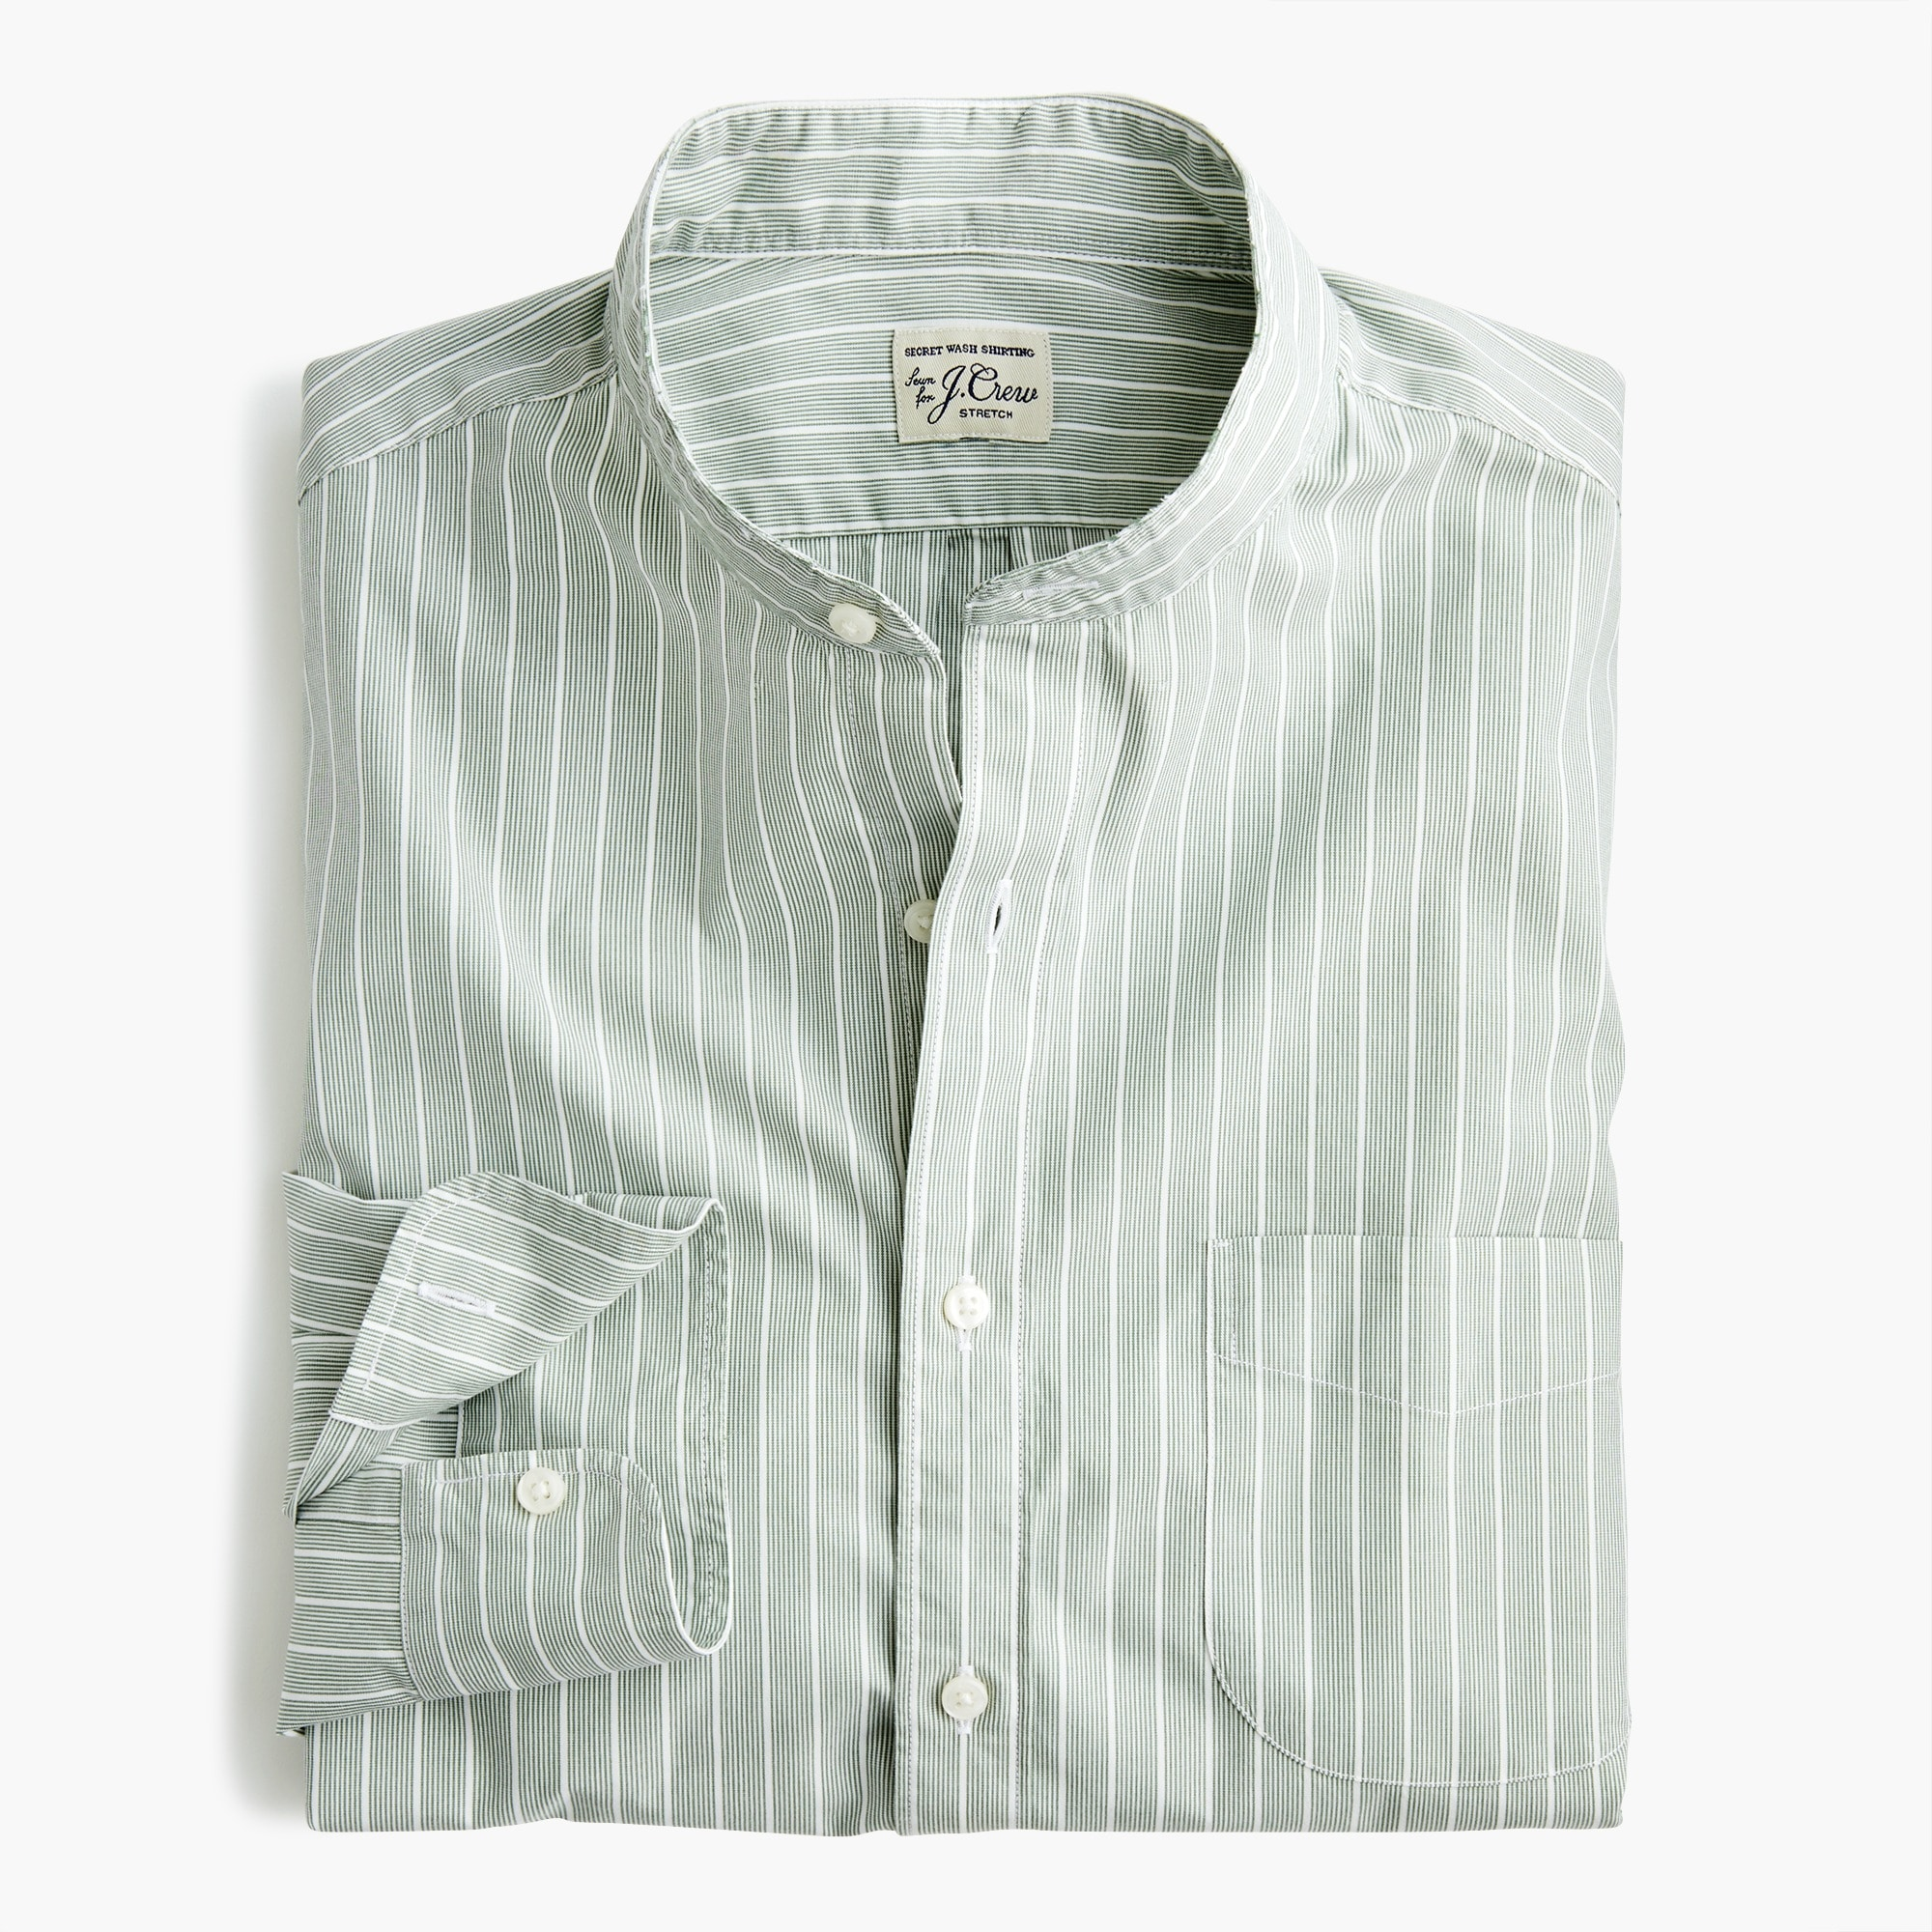 mens Slim stretch Secret Wash band-collar shirt in fall stripe